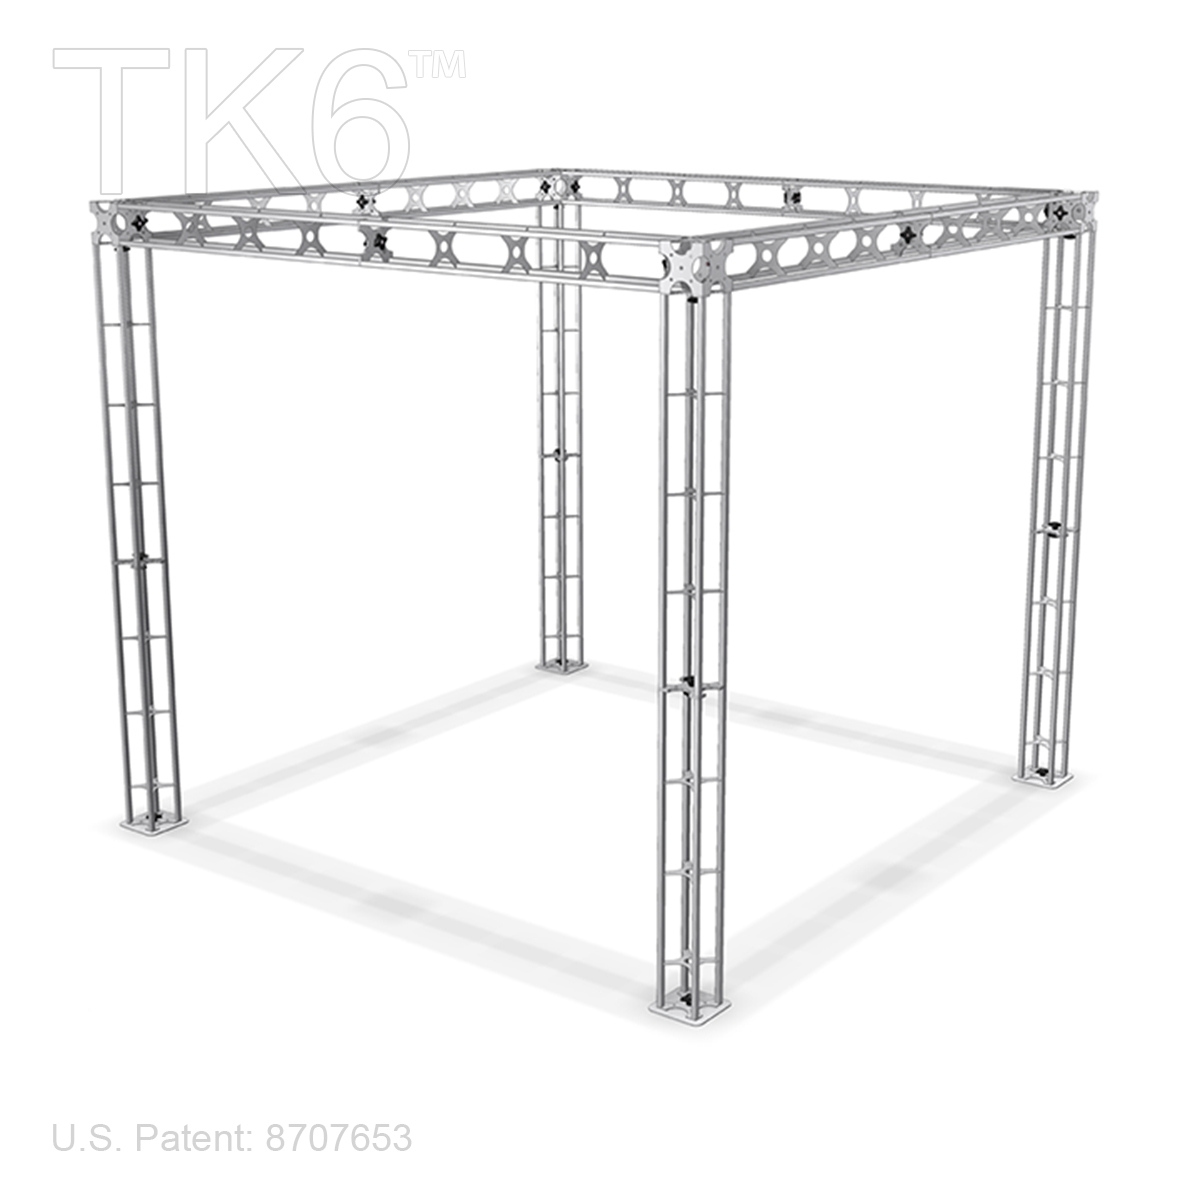 BETHEL - 10FT X 10FT TRUSS DISPLAY <BR> [FRAME ONLY]